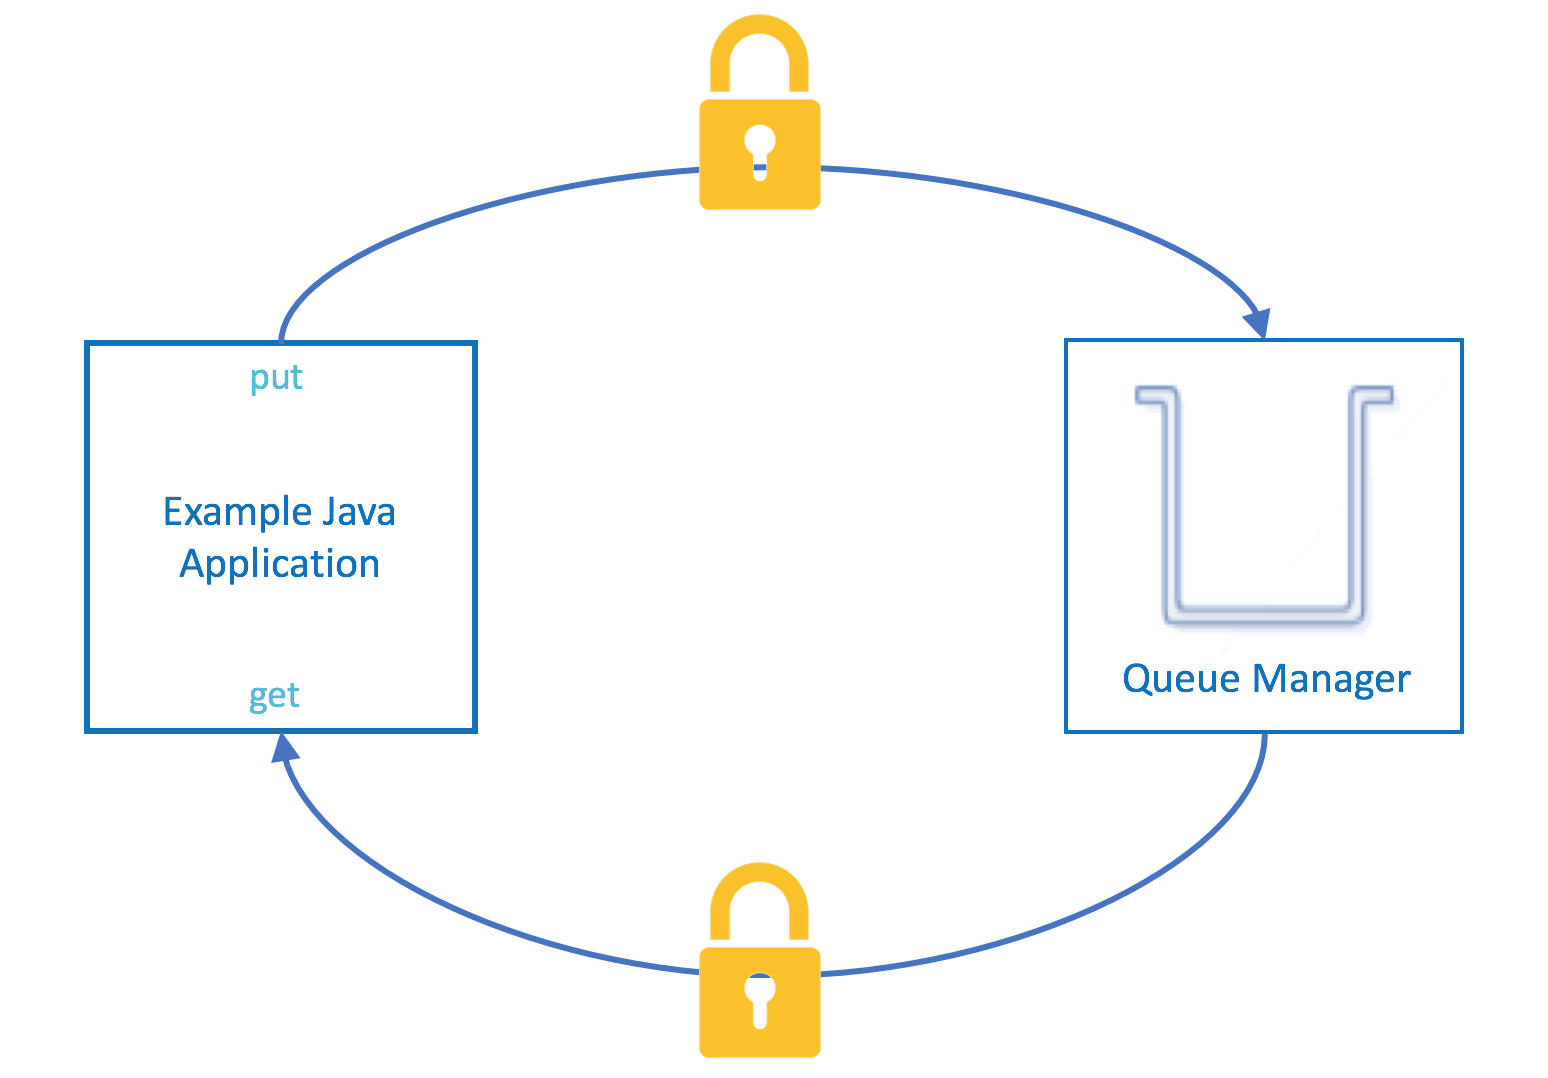 Enabling TLS between a Client and a Queue Manager